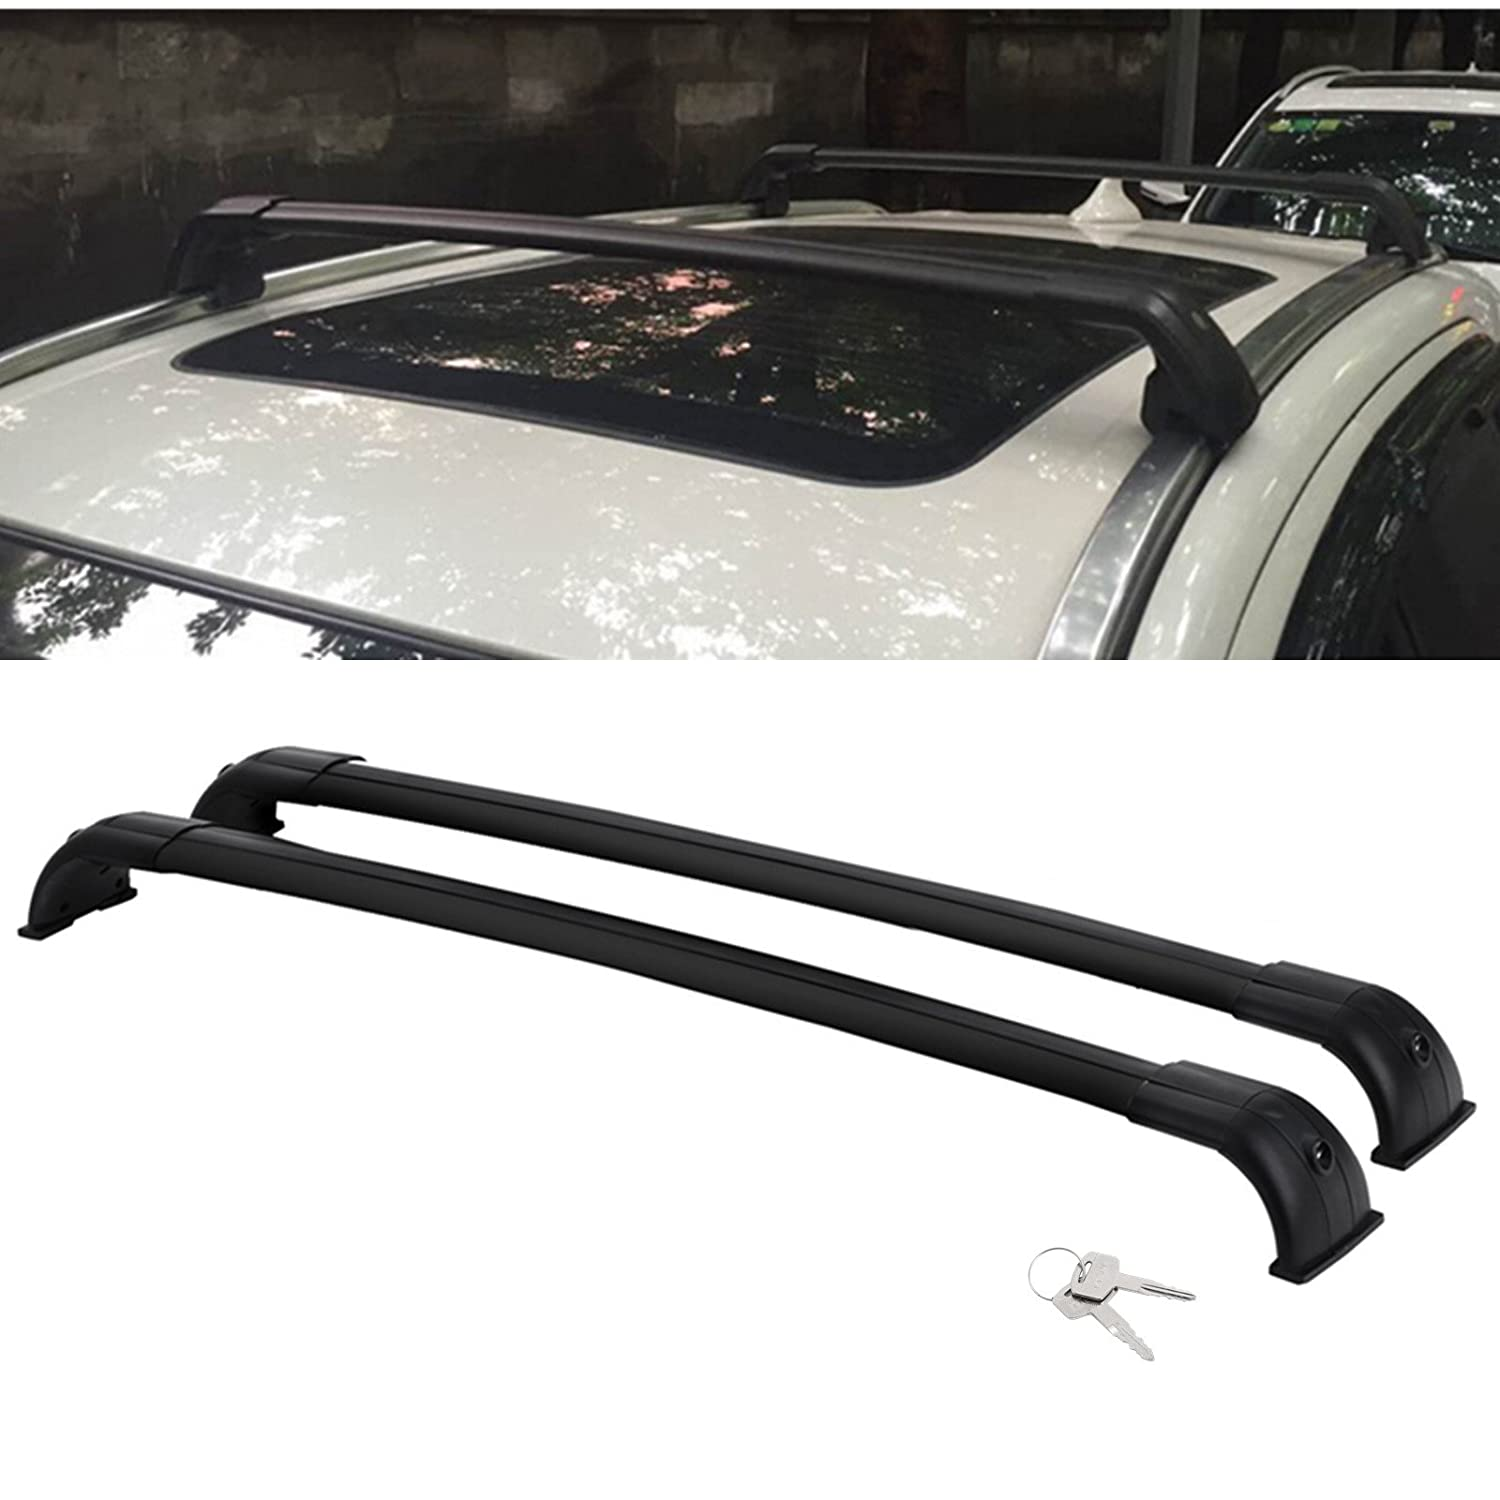 Mophorn Roof Rack Cross Bars Baggage Locking Roof Rail Crossbars Luggage Cargo Ladder Bike Load Roof Cross Bars Black (Land Rover LR3 LR4 Land Rover LR3 LR4 2005-2016 Black)